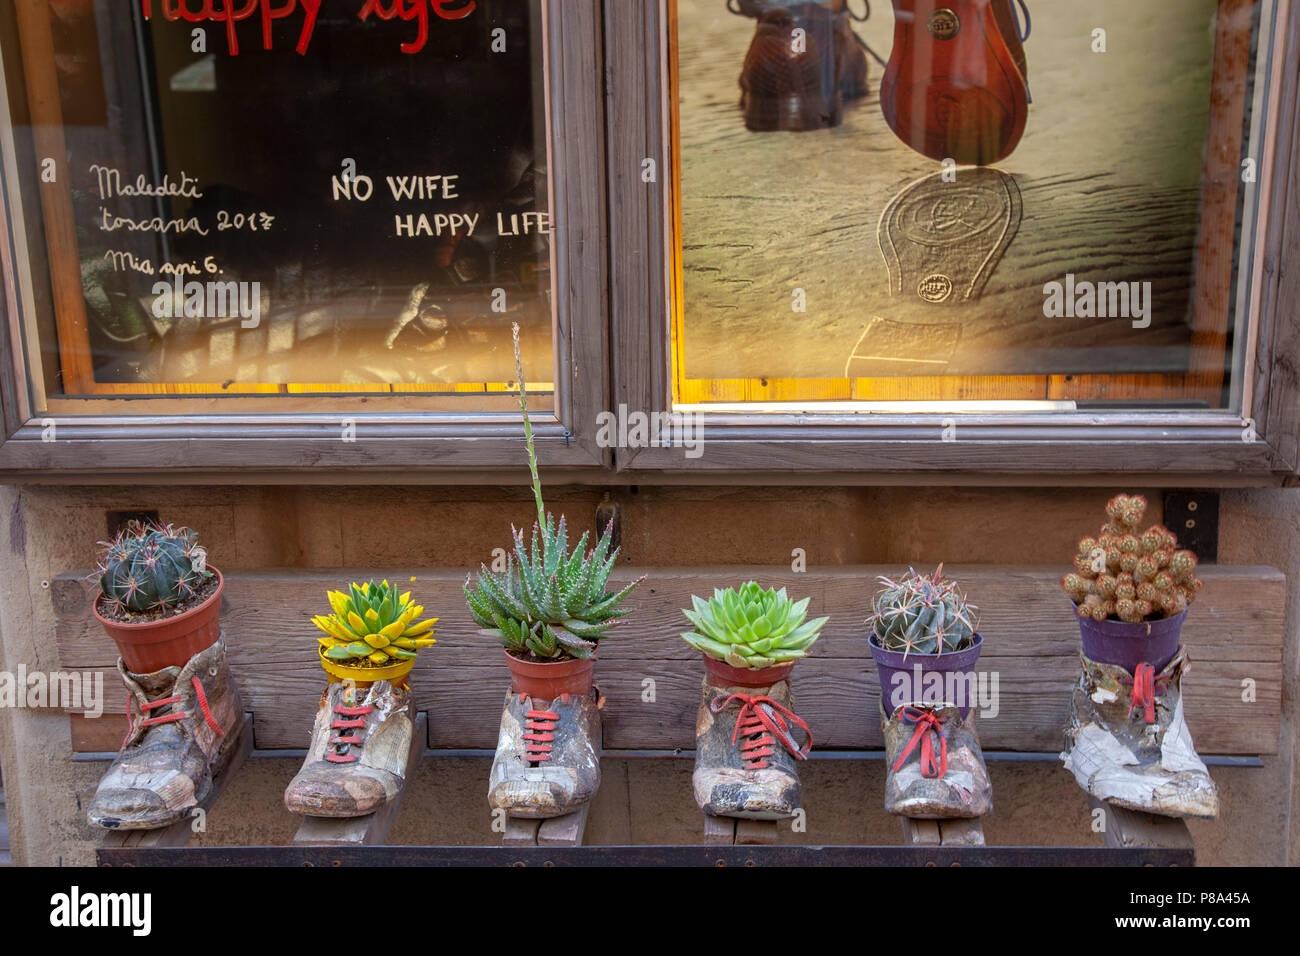 Eccentric pot holders with succulents on display (Montepulciano - Tuscany - Italy). Cache-pots farfelus avec plantes grasses. - Stock Image